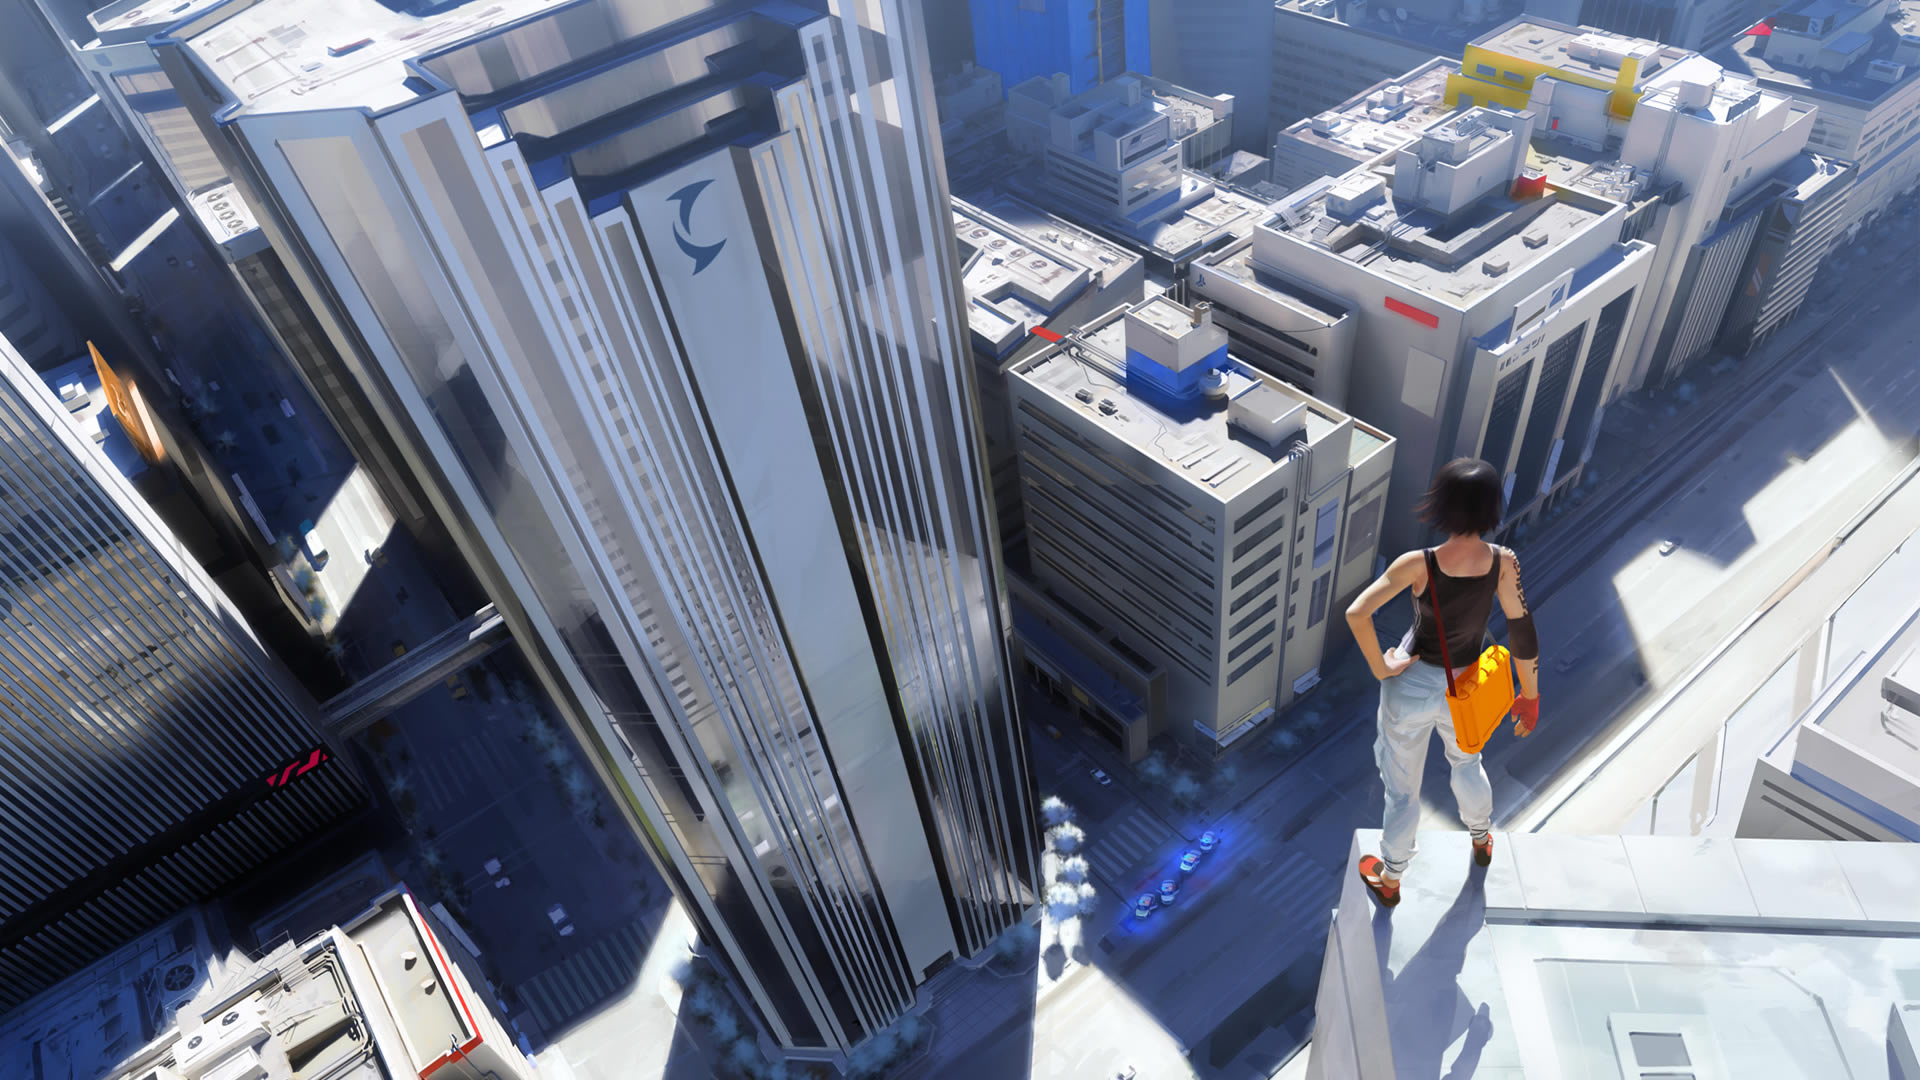 20 Mirrors Edge wallpapers   Videogames wallpaperCoolvibe 1920x1080